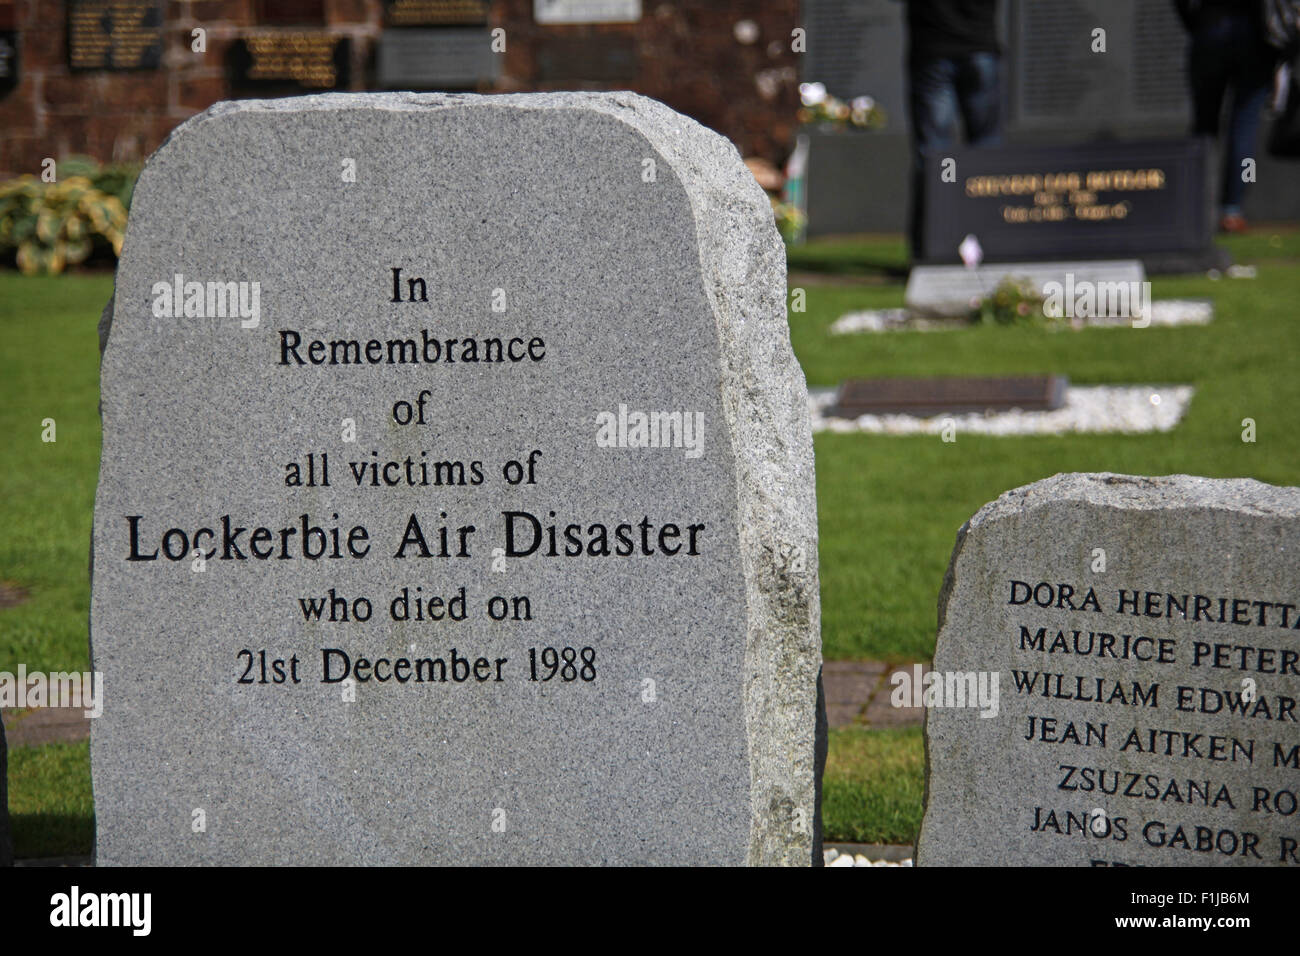 Lockerbie PanAm103 In Rememberance Memorial Stone, Scotland, UK Stock Photo